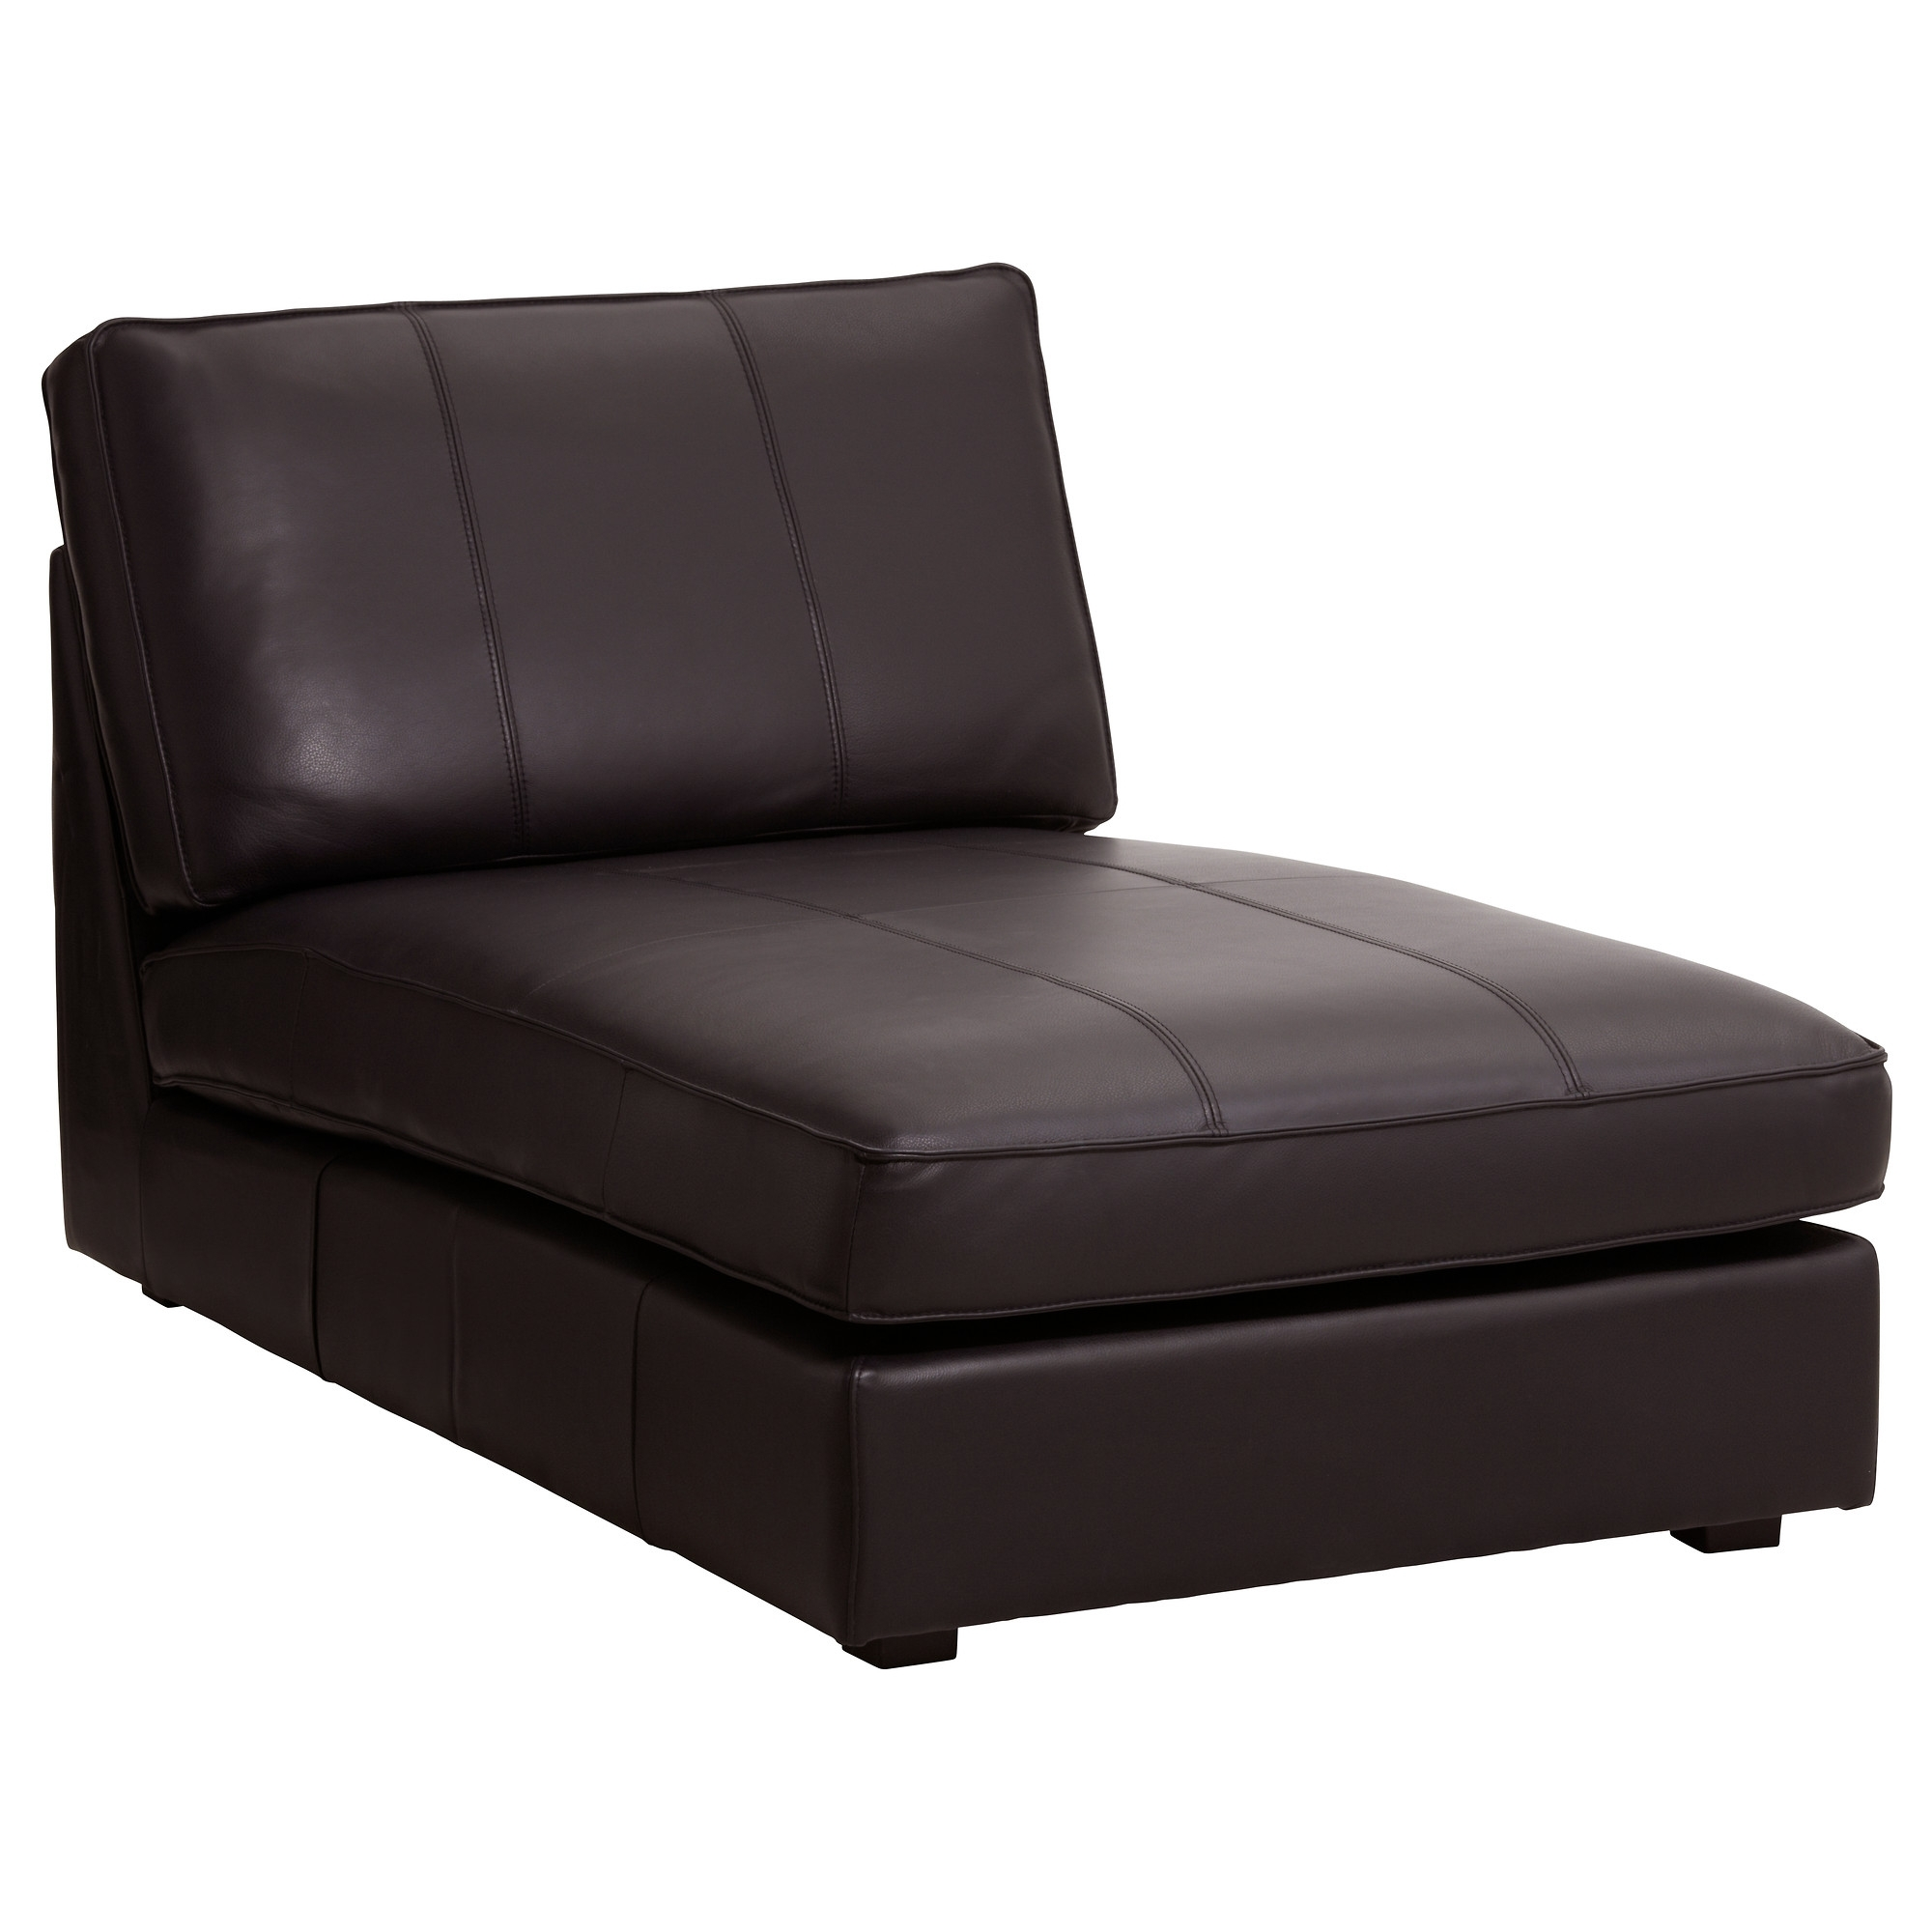 Kivik Chaise – Grann/bomstad Dark Brown – Ikea Within Well Known Ikea Kivik Chaises (View 6 of 15)